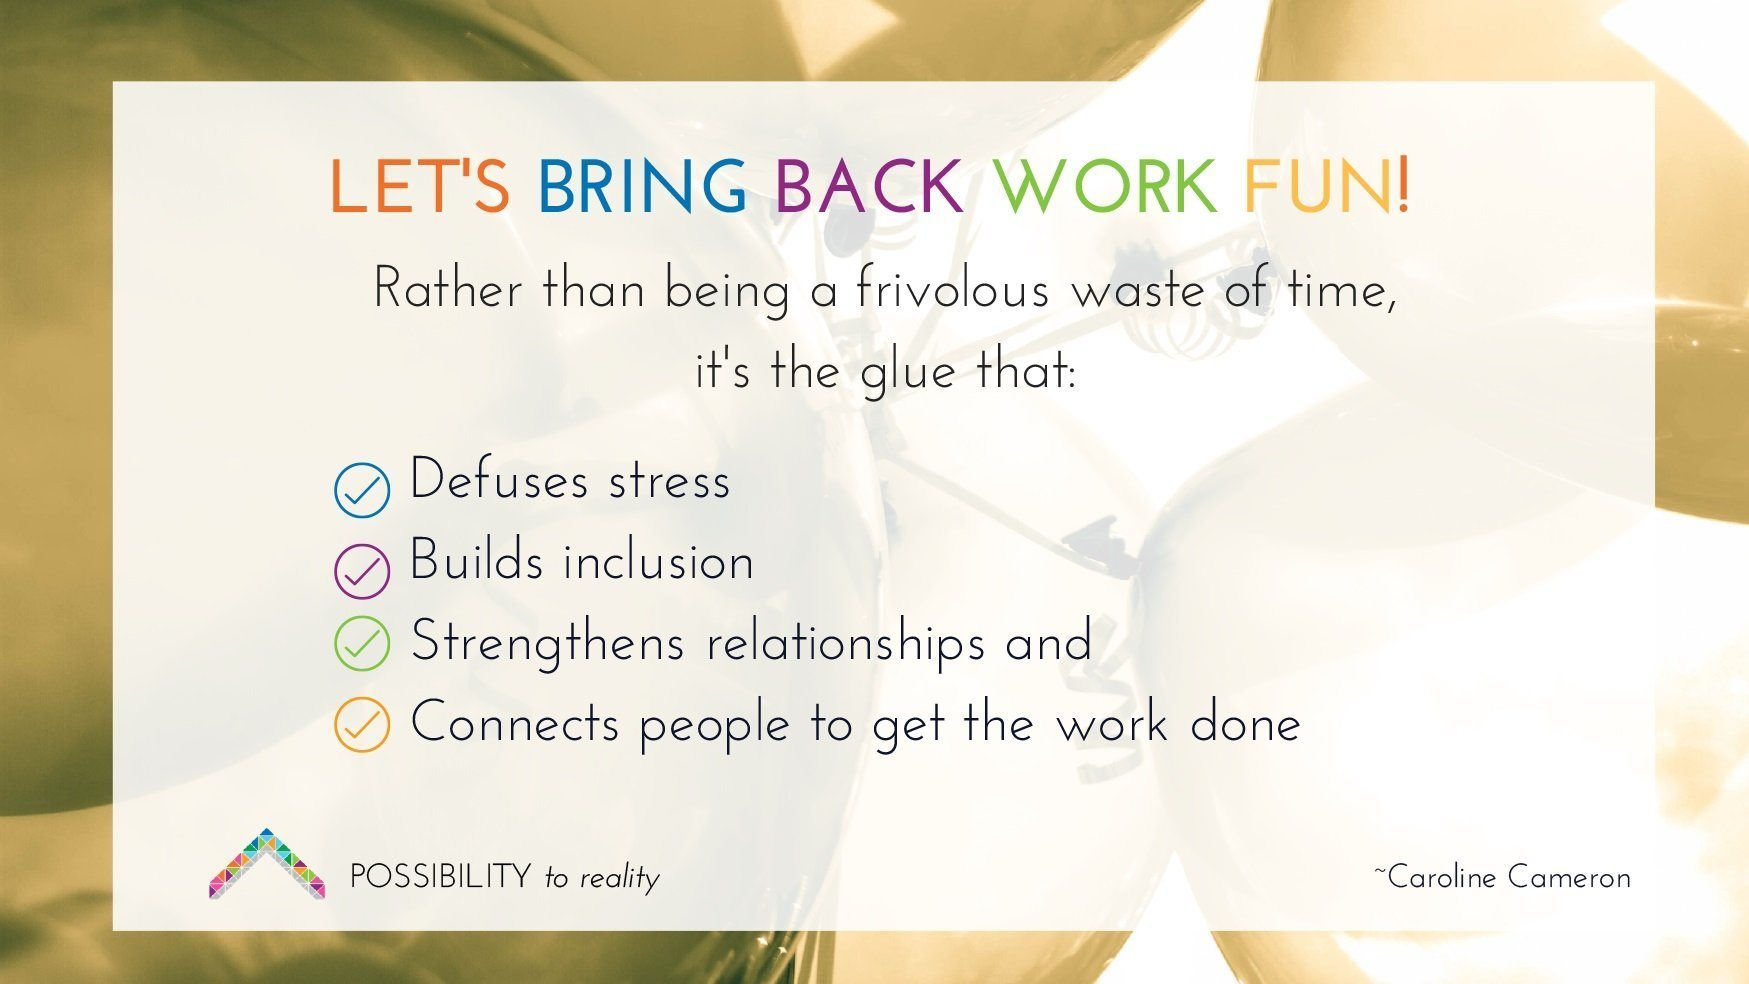 Bring-Back-Work-Fun